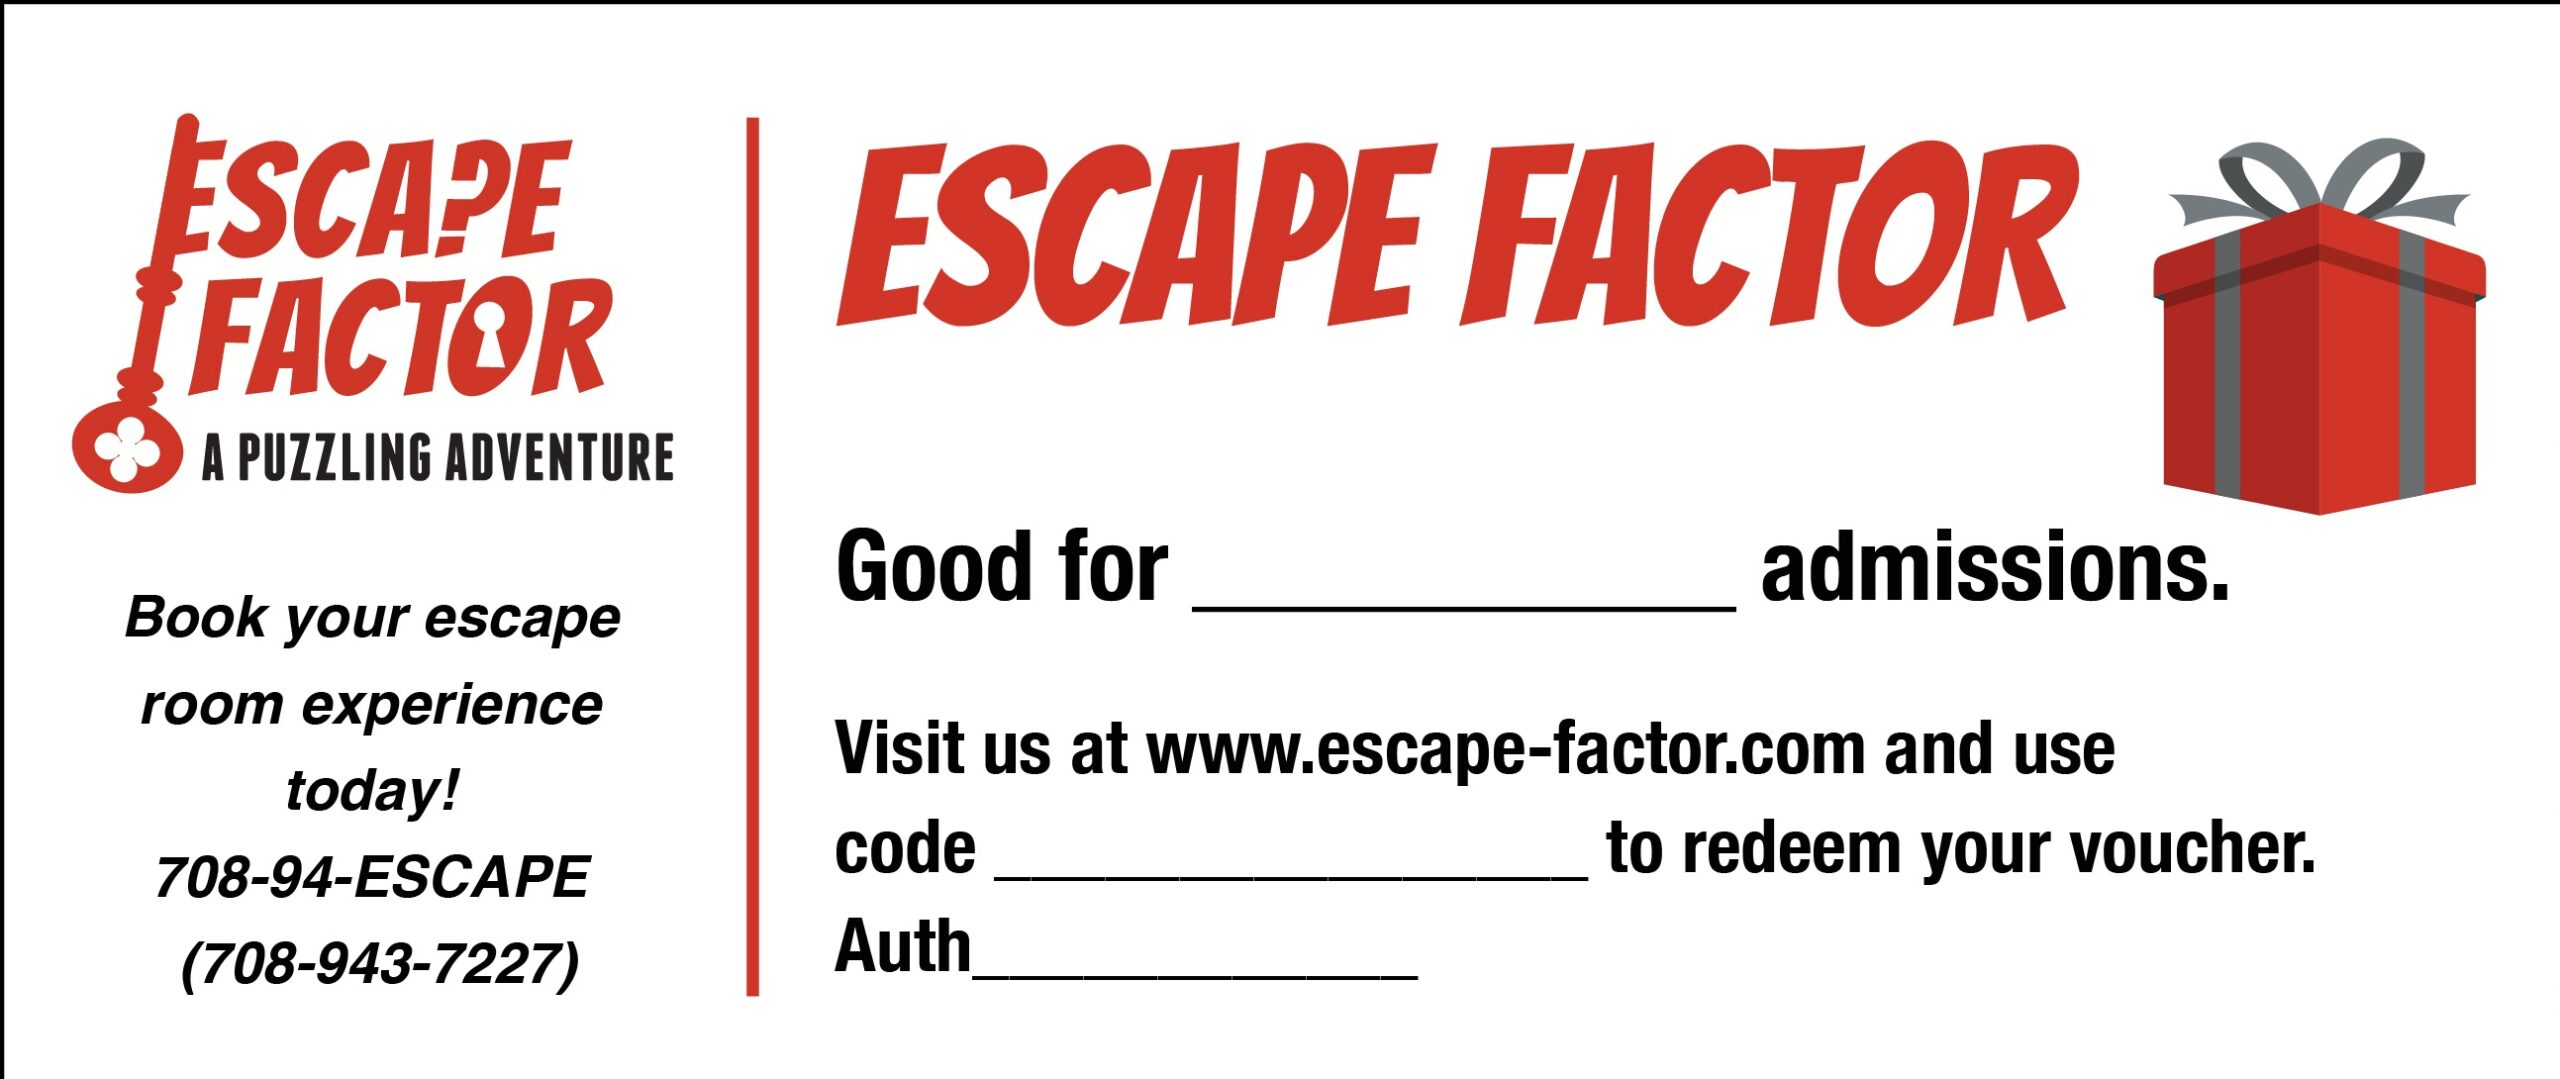 Escape Factor Gift Voucher